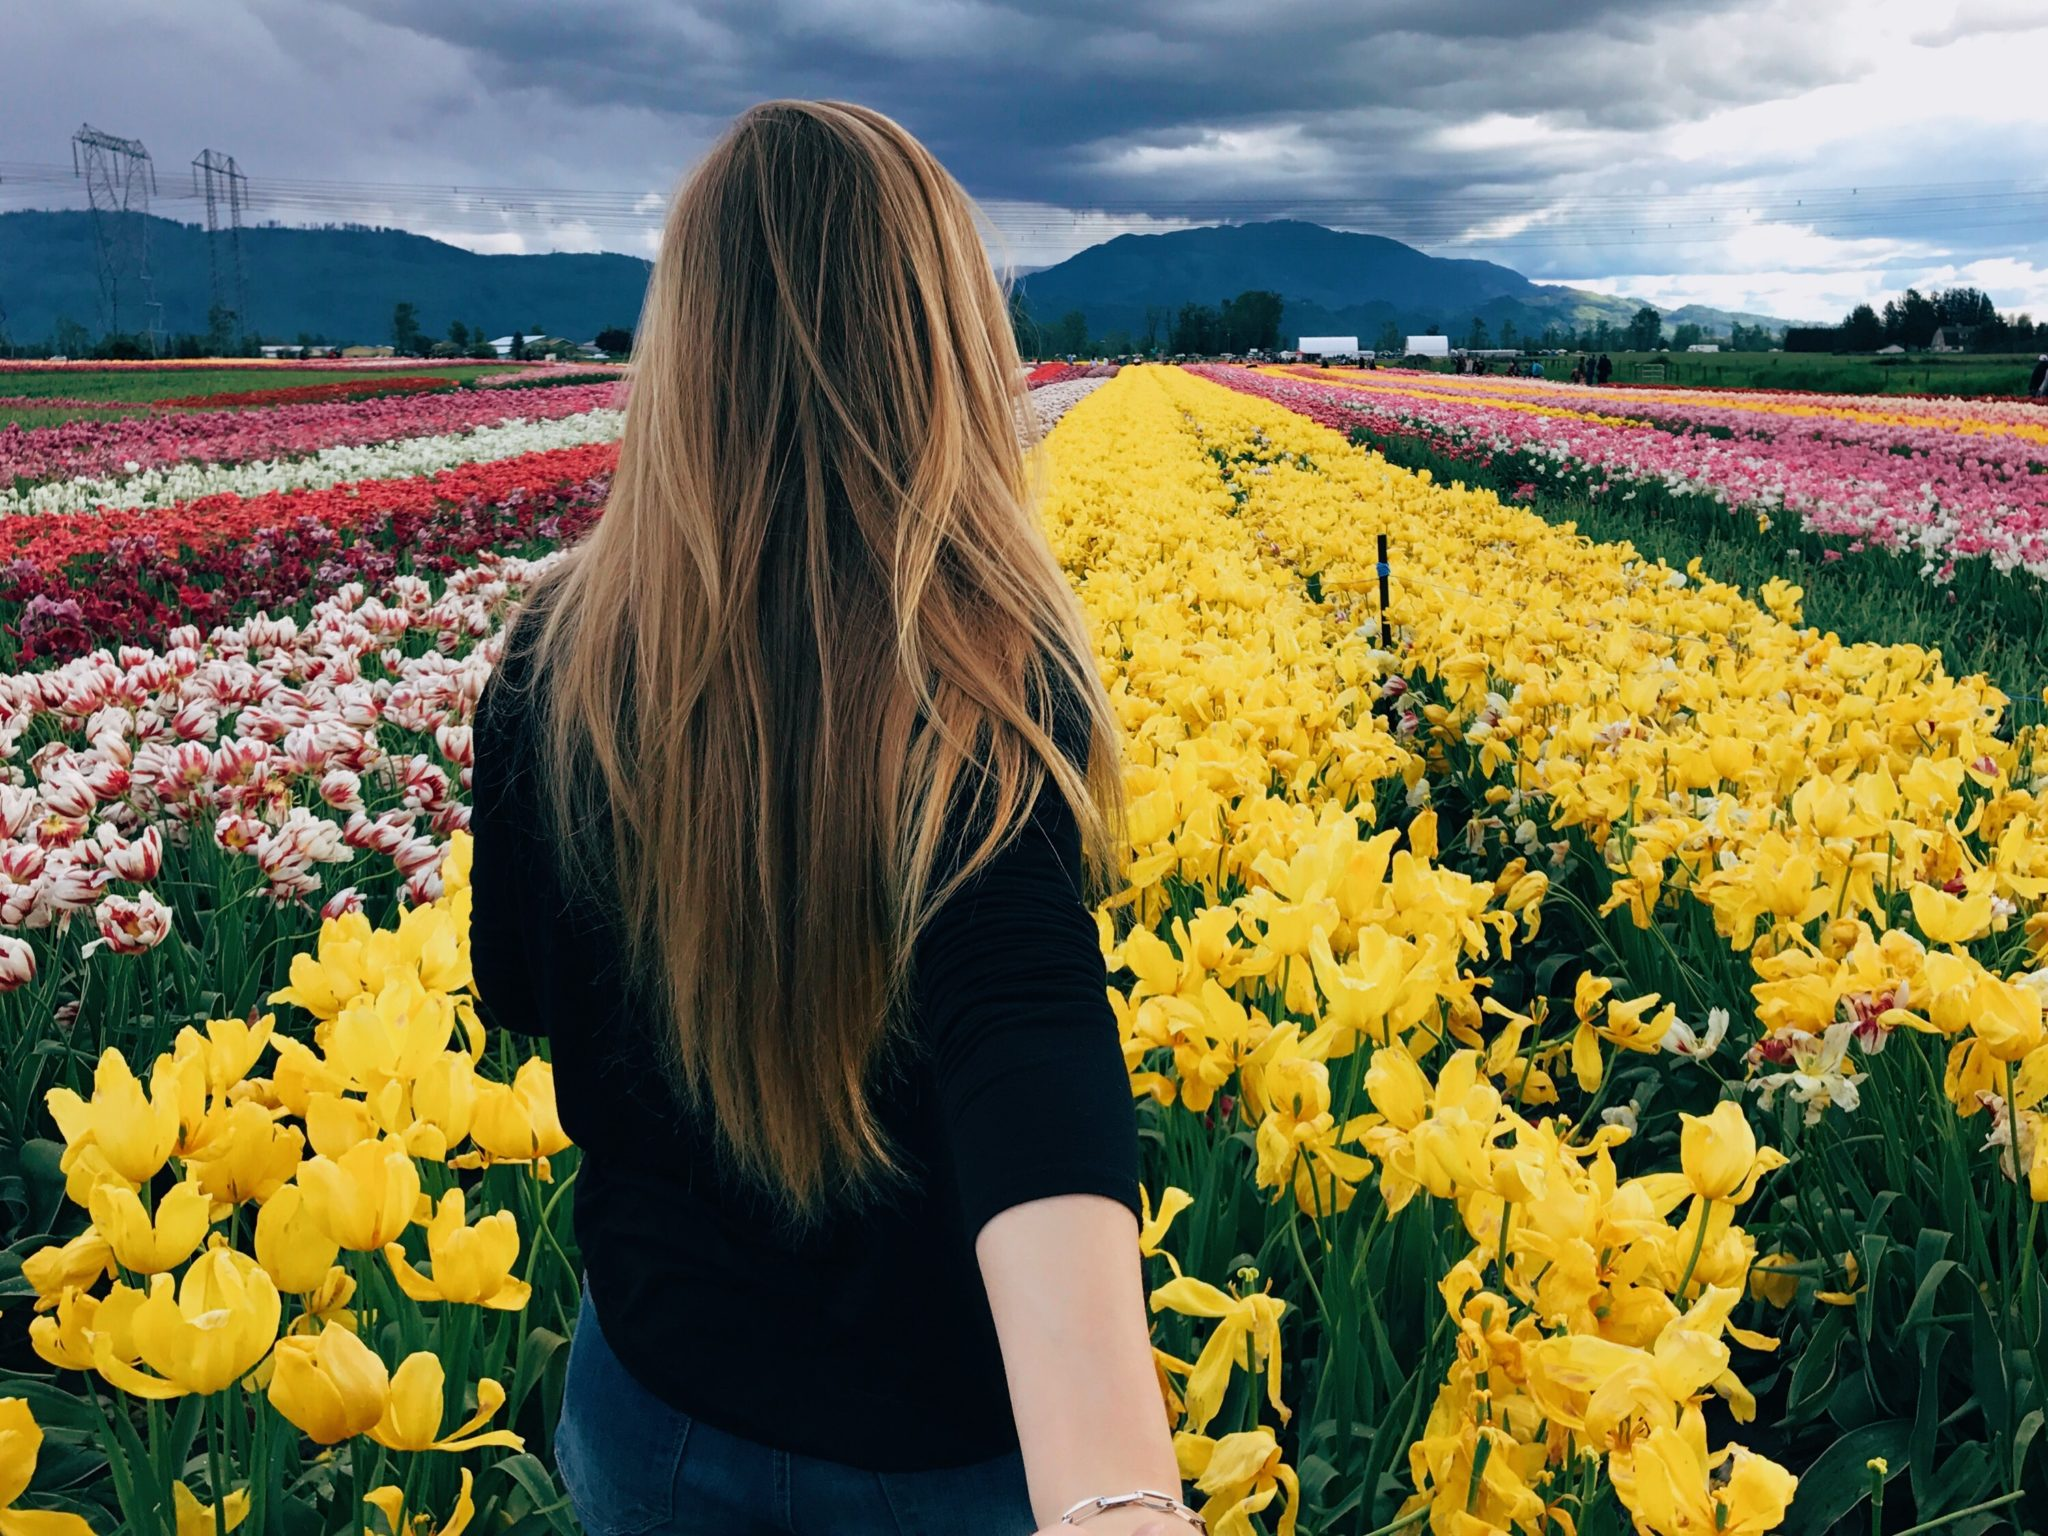 Visiting the Abbotsford Tulip Festival